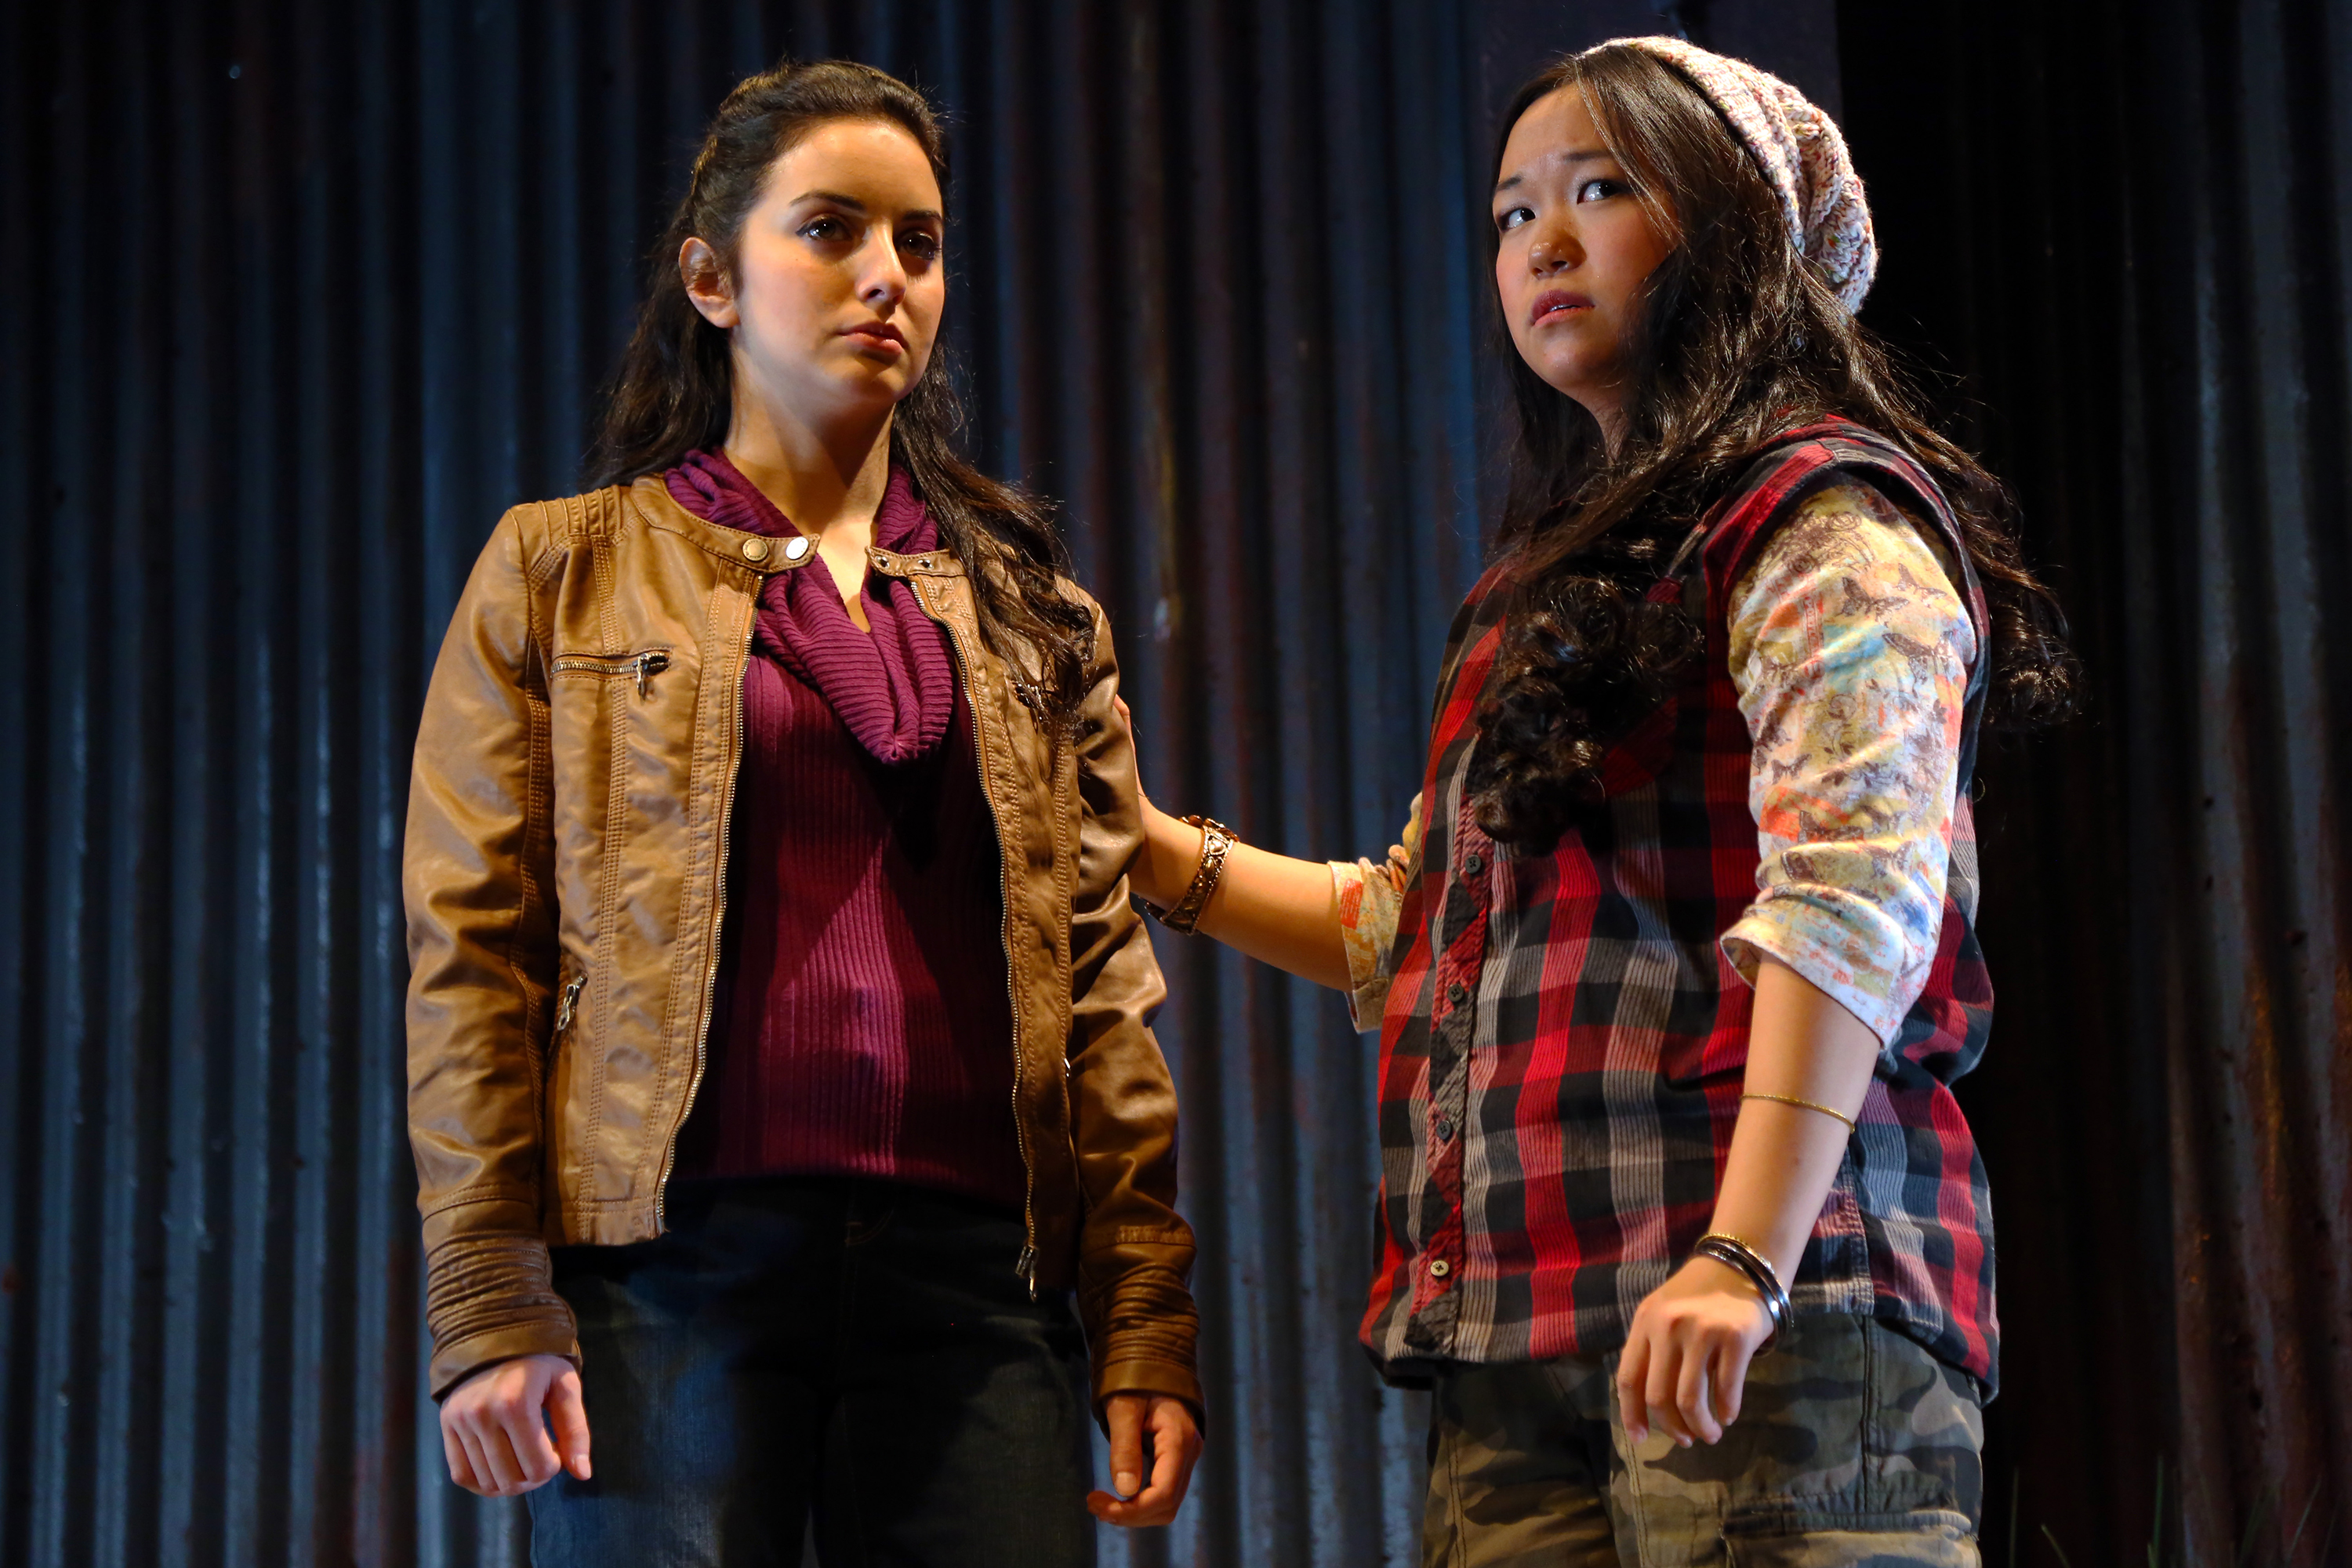 Rebekah Berger, BFA Acting '19 and Pearl Matteson, BFA Acting '19 in NUEVO CALIFORNIA by Bernardo Solano and Allan Havis, onstage through Nov 6, 2016 in Connecticut Repertory Theatre's Studio Theatre. (Gerry Goodstein for UConn)